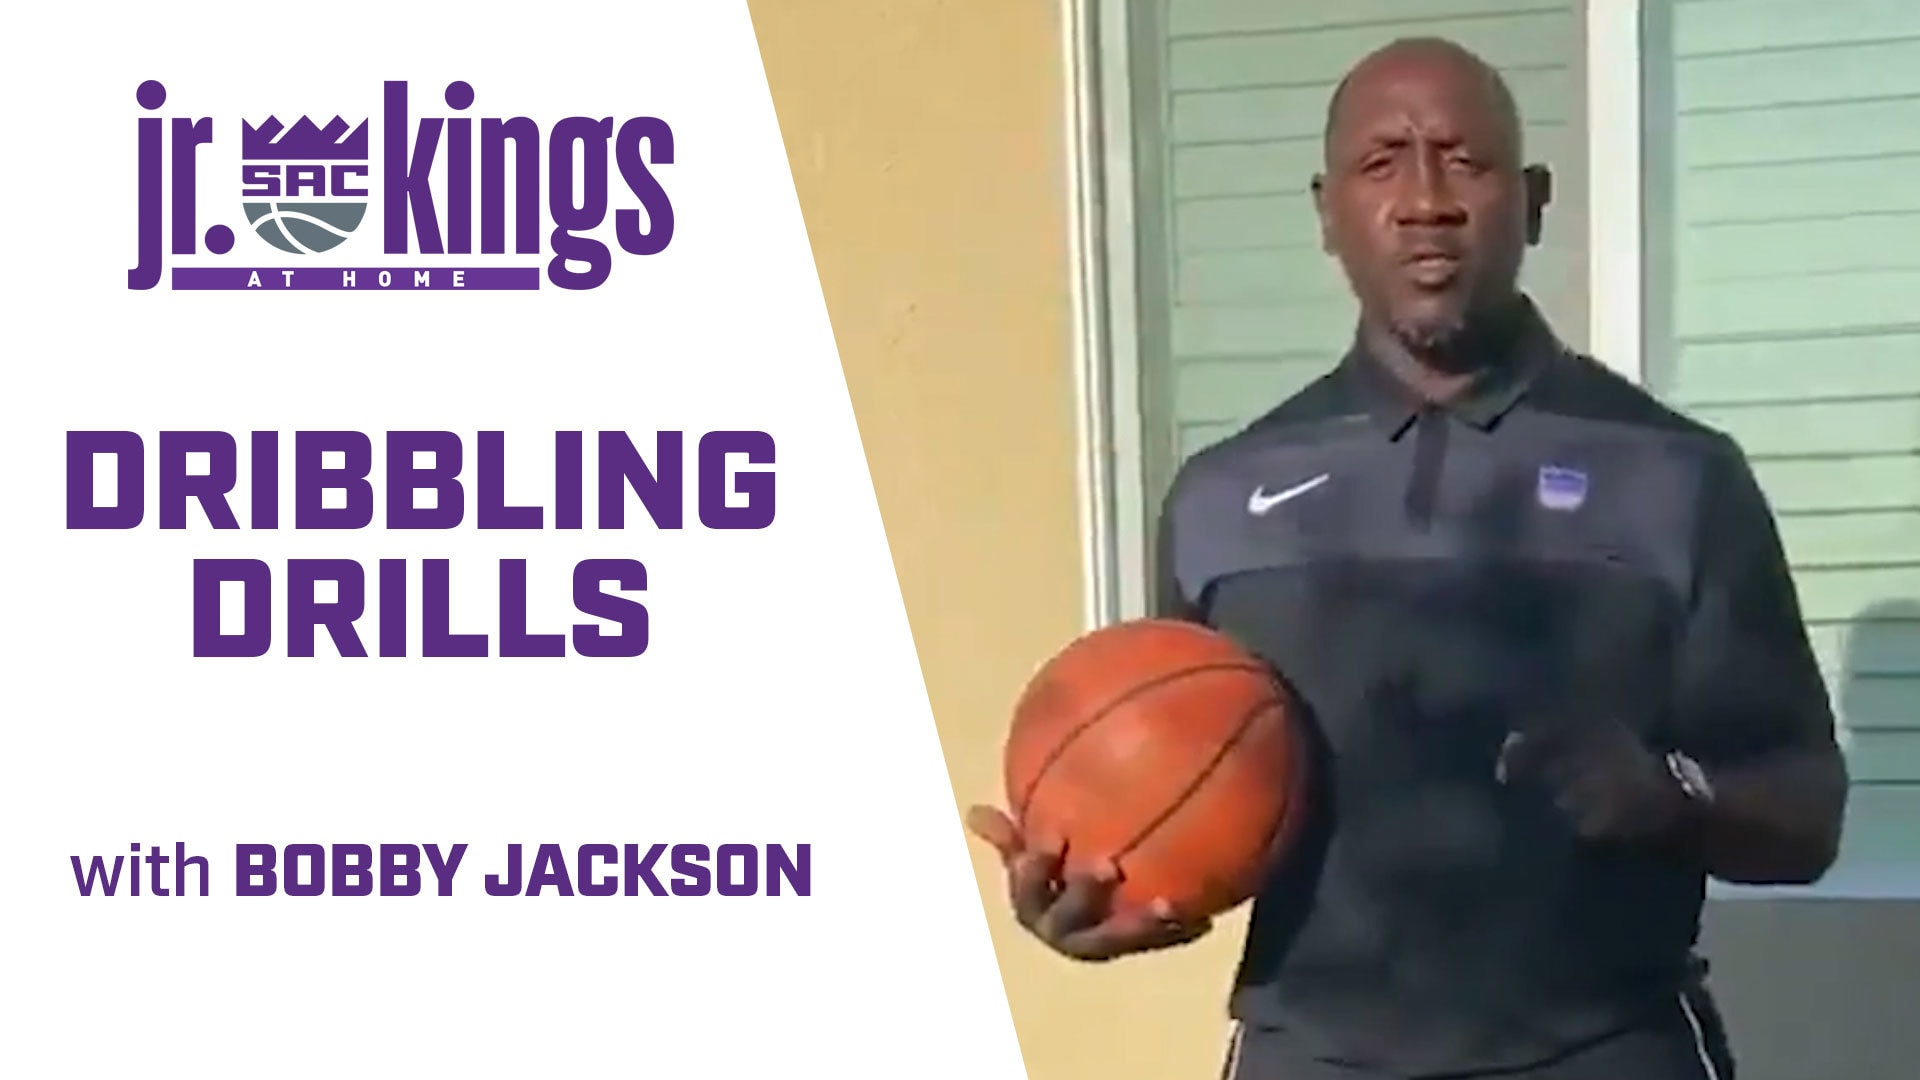 Jr. Kings at Home | Dribbling Drills with Bobby Jackson